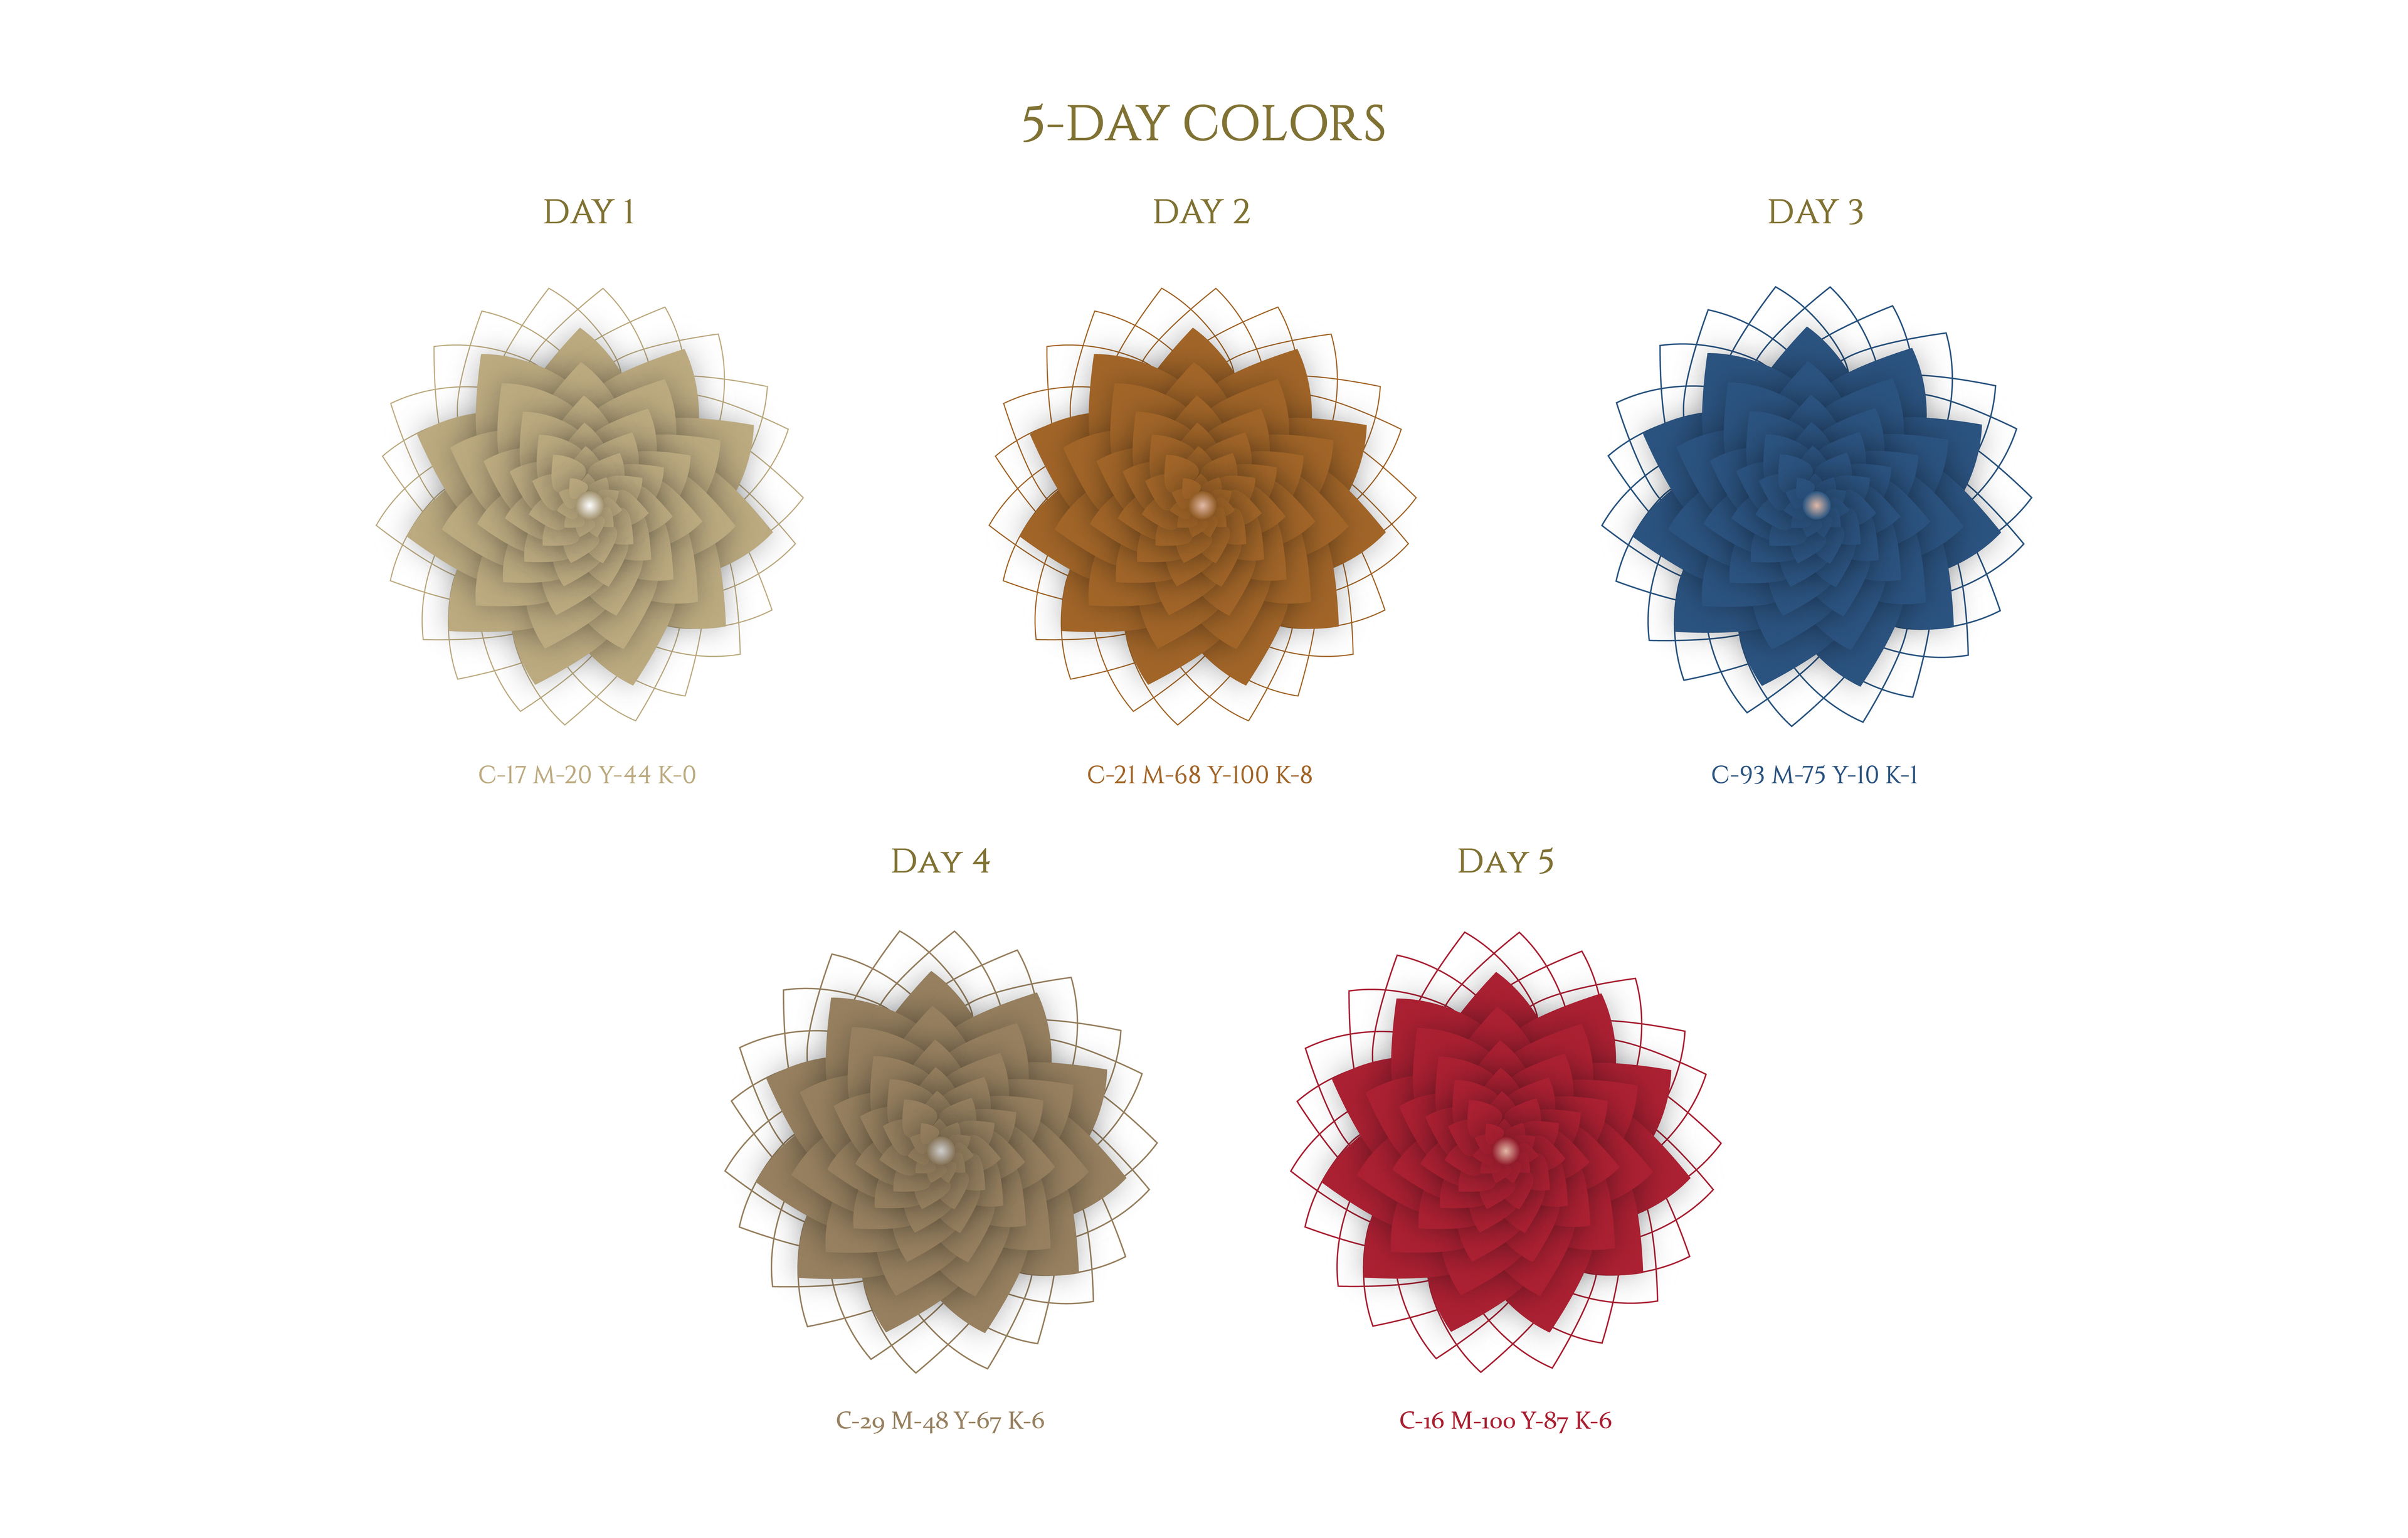 5-Day Colors